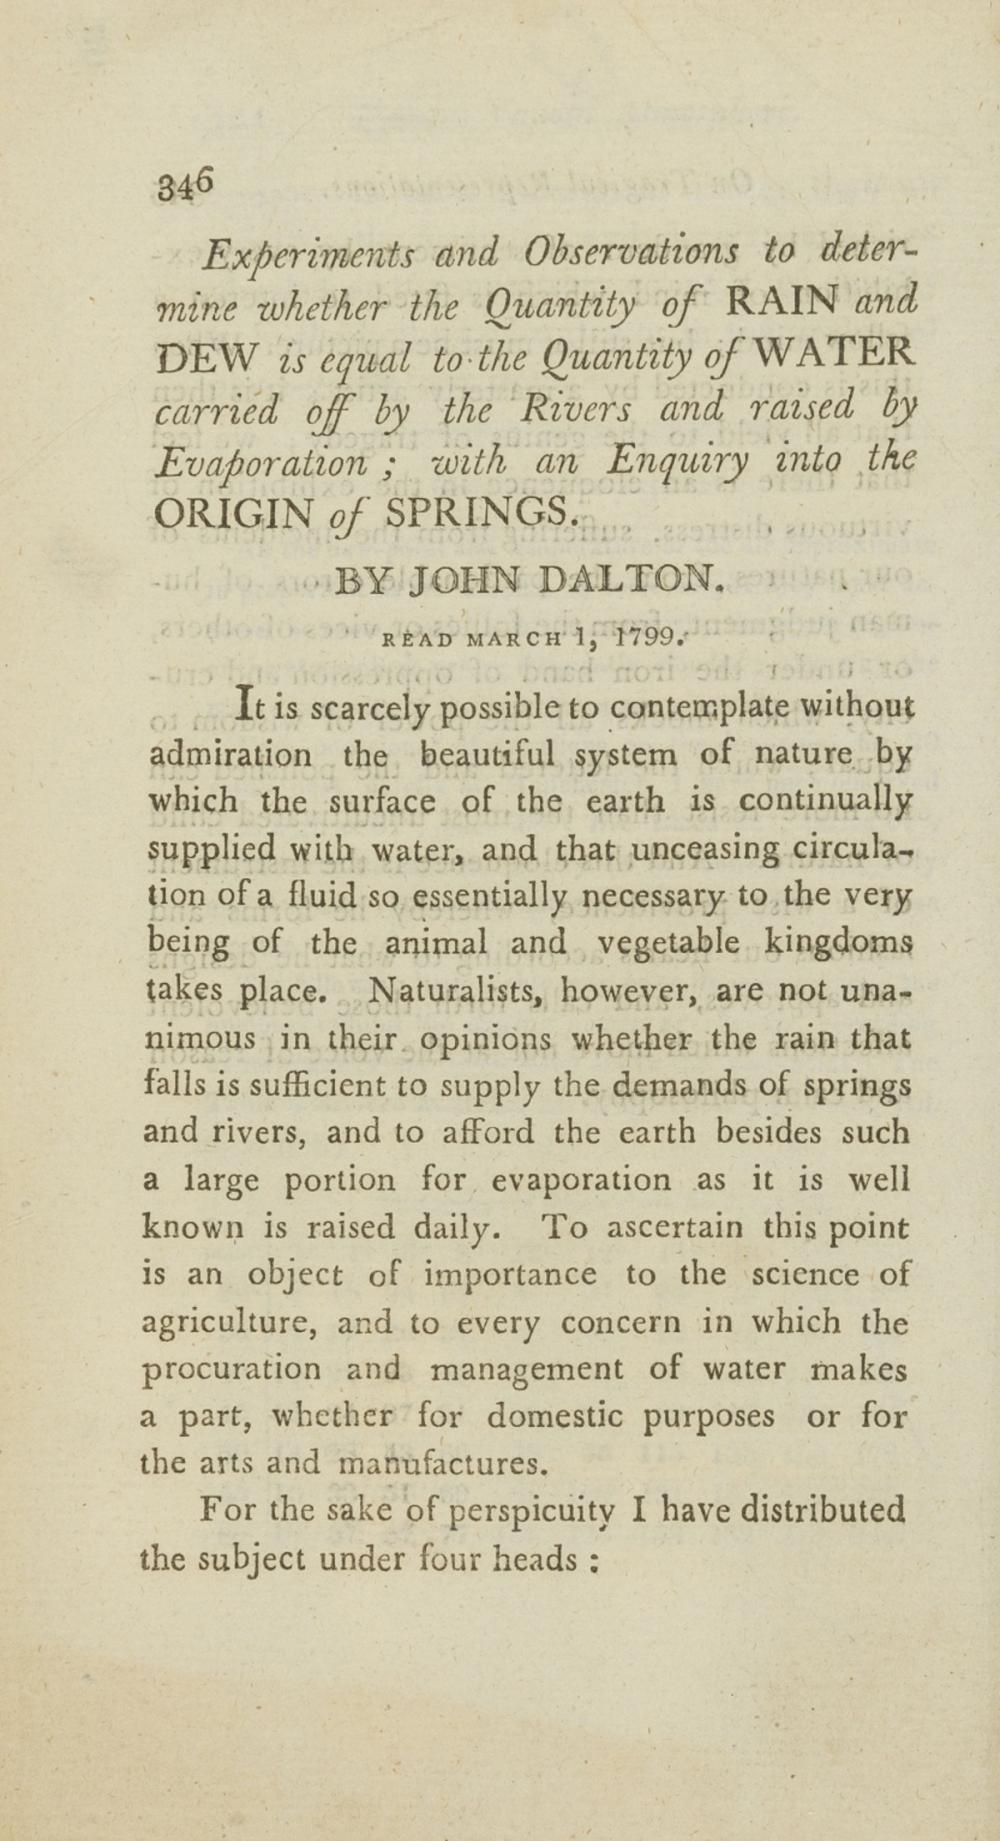 aristotles collection essay physics Role of nature in aristotle's account of natural teleology has been widely   physics: a collection of essays (oxford, 1991), 101–28 at 103) see also simpl  in.